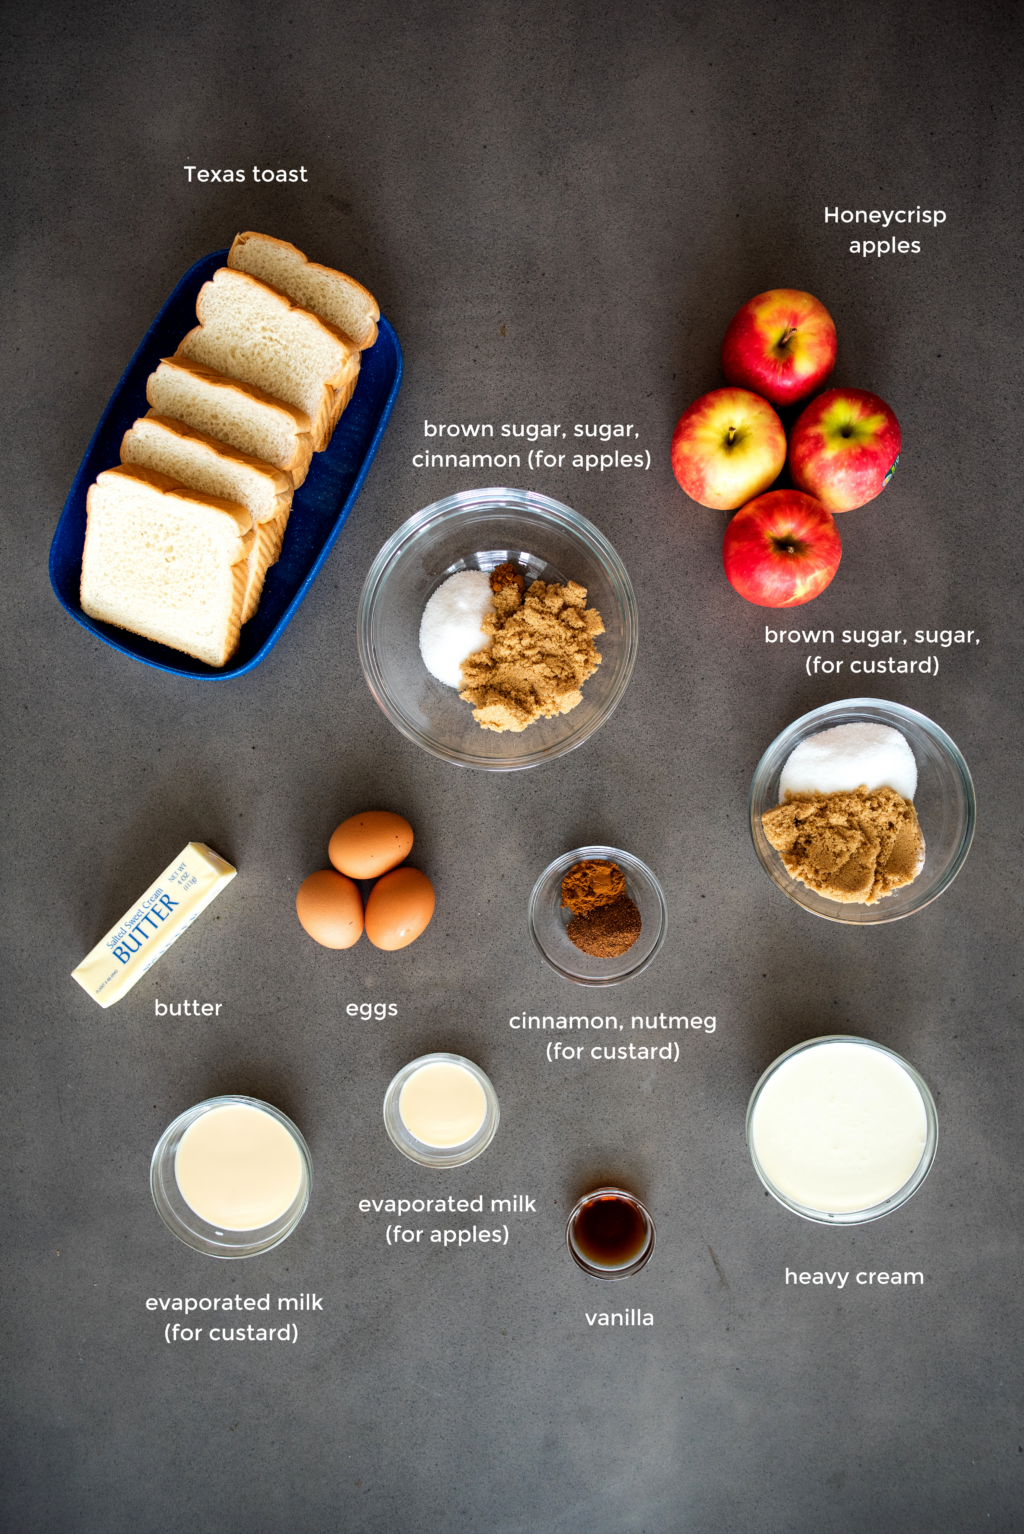 french toast and caramelized apples ingredients